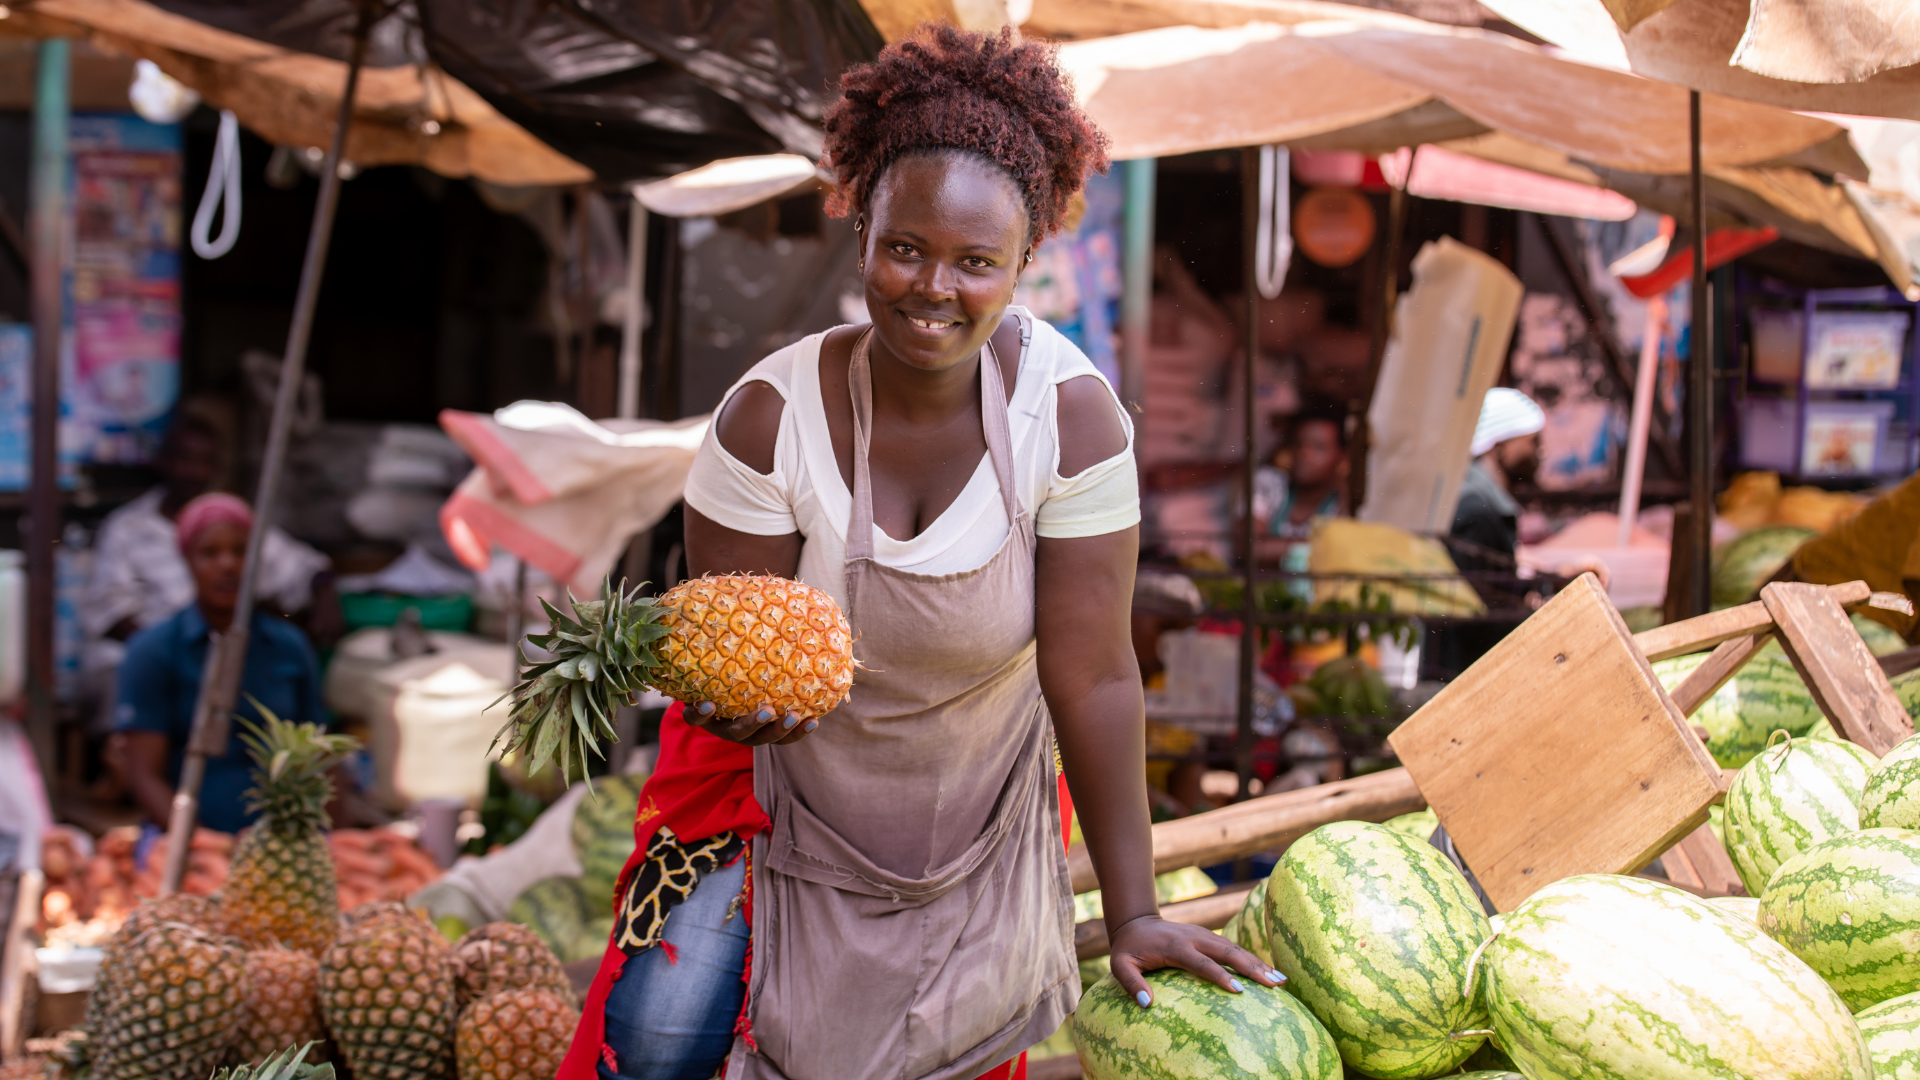 More than 50% of Jumia sellers in Nigeria and Kenya are women entrepreneurs